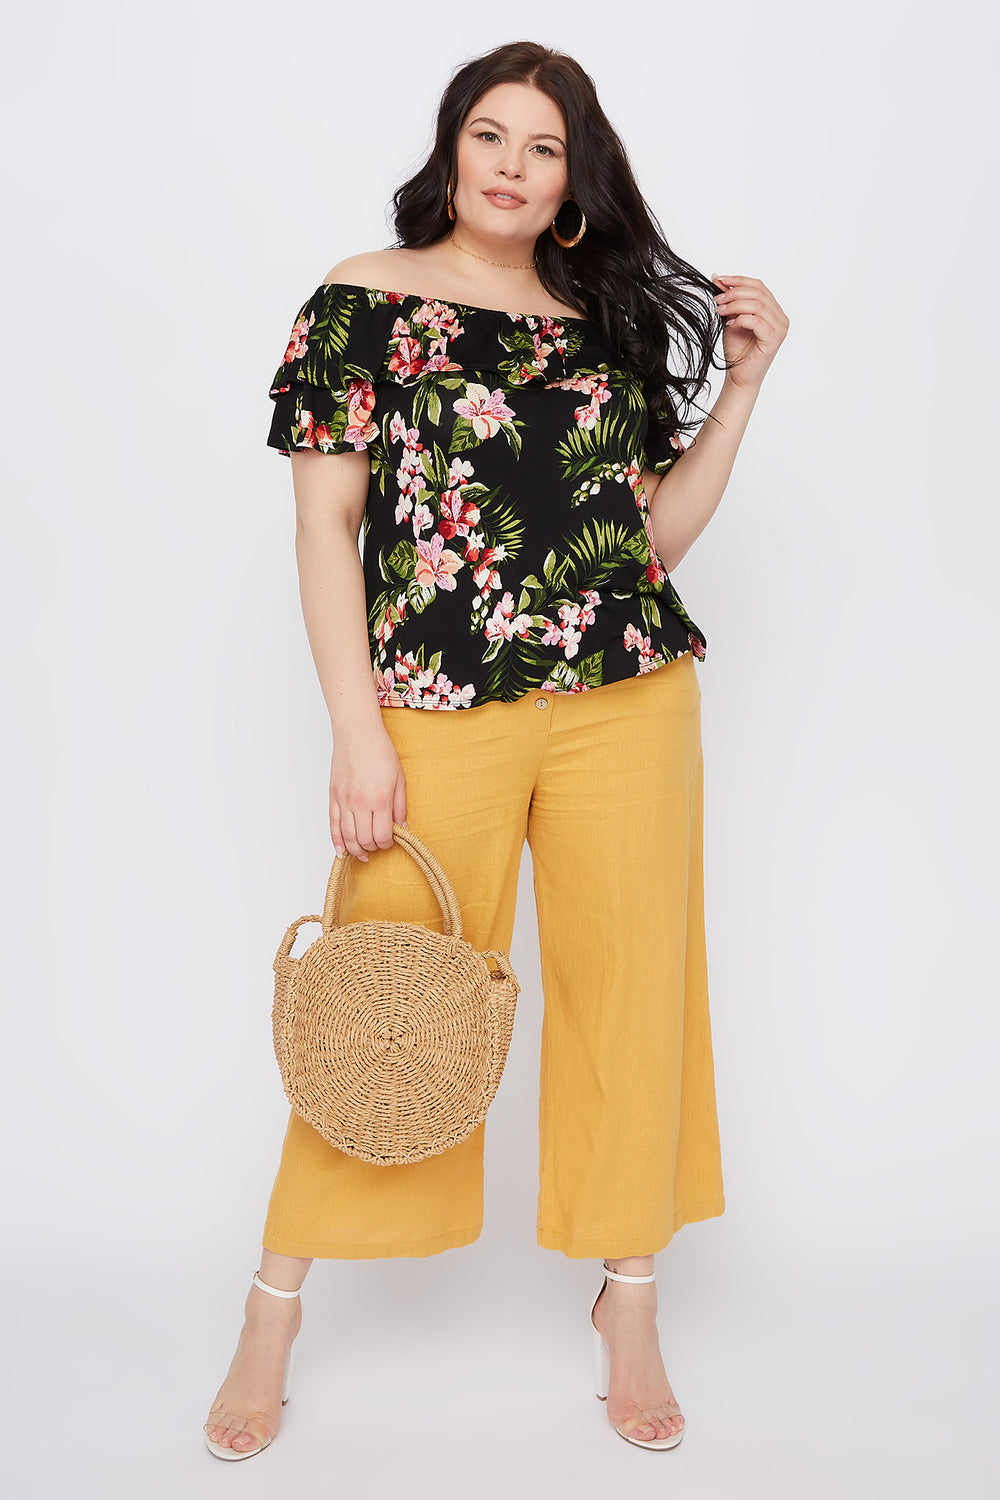 Plus Size Floral Off The Shoulder Flounce Top Black